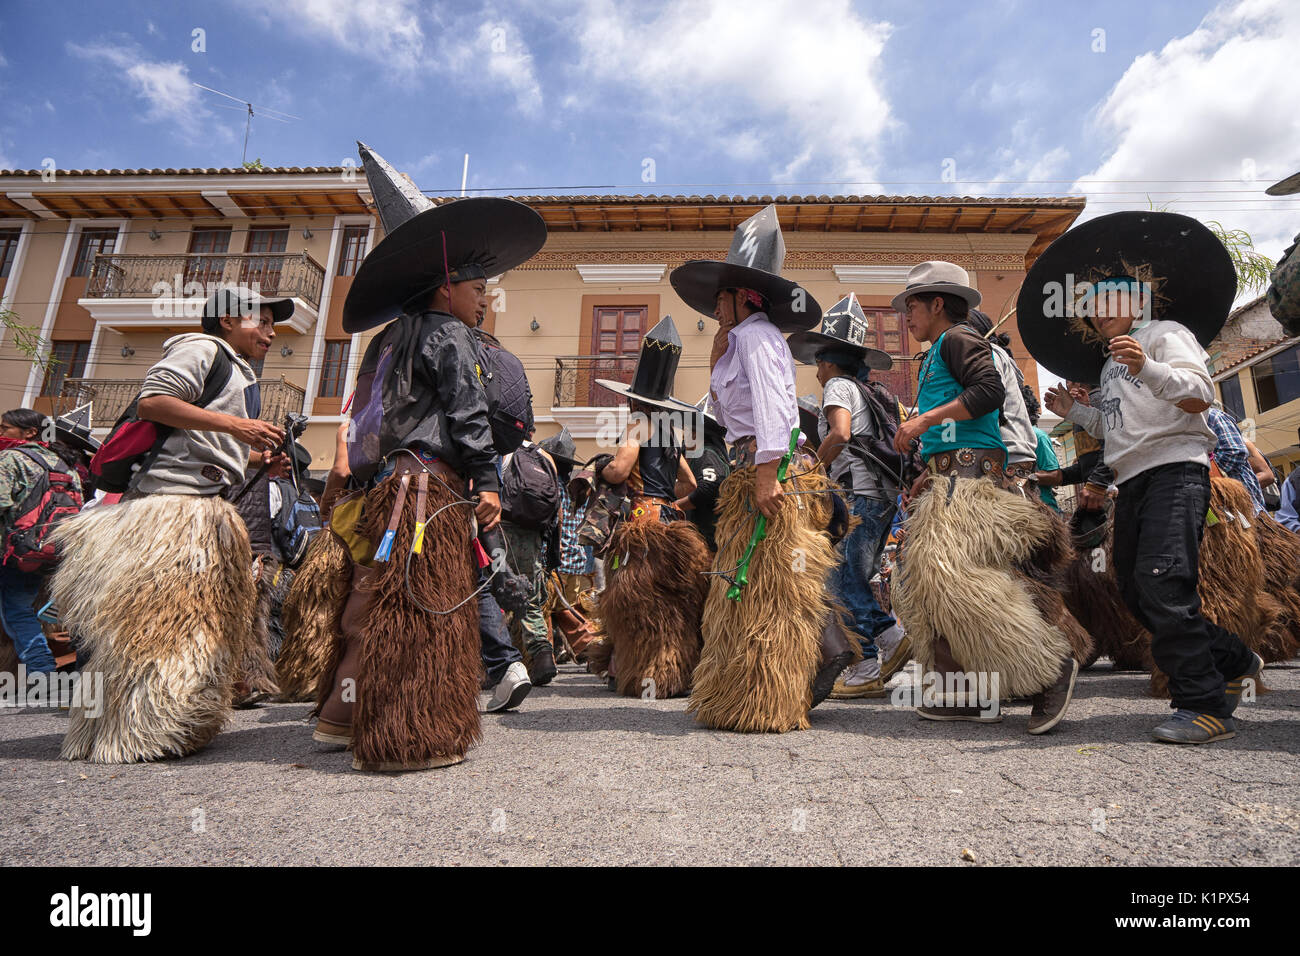 June 24,2017 Cotacachi, Ecuador; men participating at Inti Raymi dances on the street - Stock Image